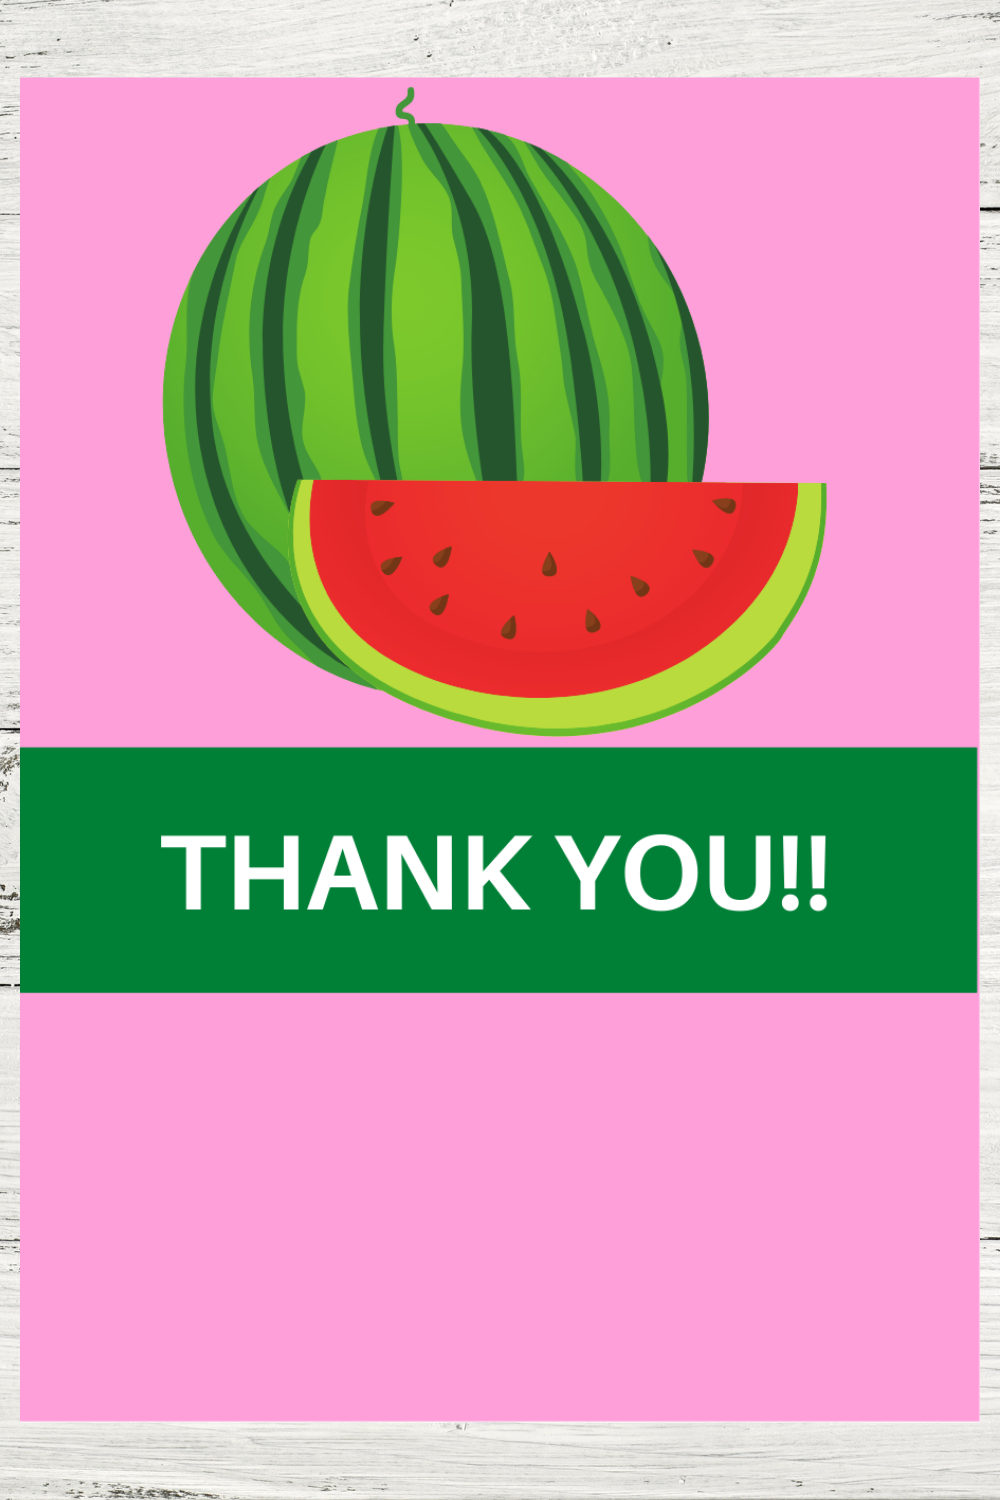 free download: watermelon themed thank you note